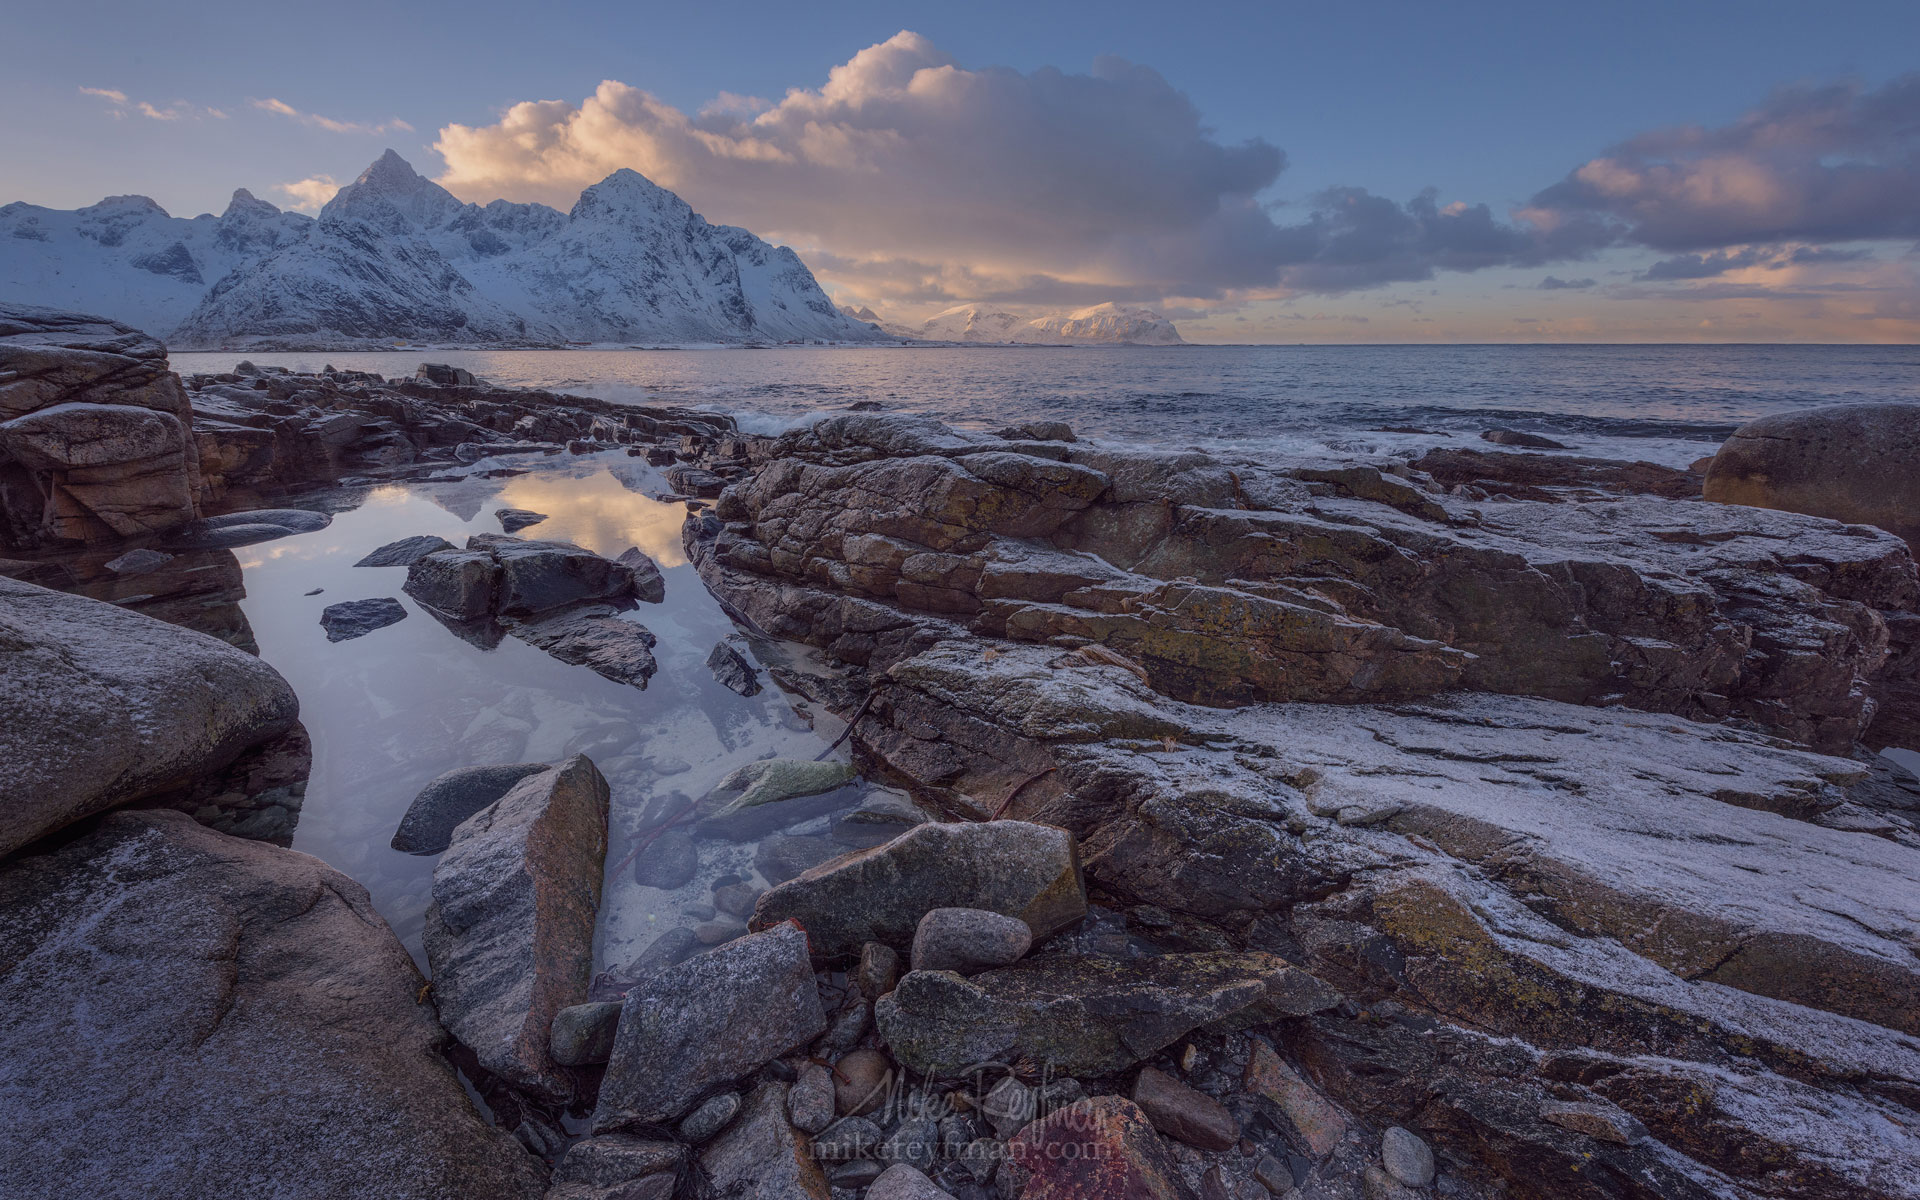 Vareid Shoreline and Jagged snow capped peaks of Flakstad Fjord before sunset. Vareid, Flakstadoya island, Lofoten archipelago, Nordland, Norway. LF-MRD1E0393 - Lofoten Archipelago in Winter, Arctic Norway - Mike Reyfman Photography